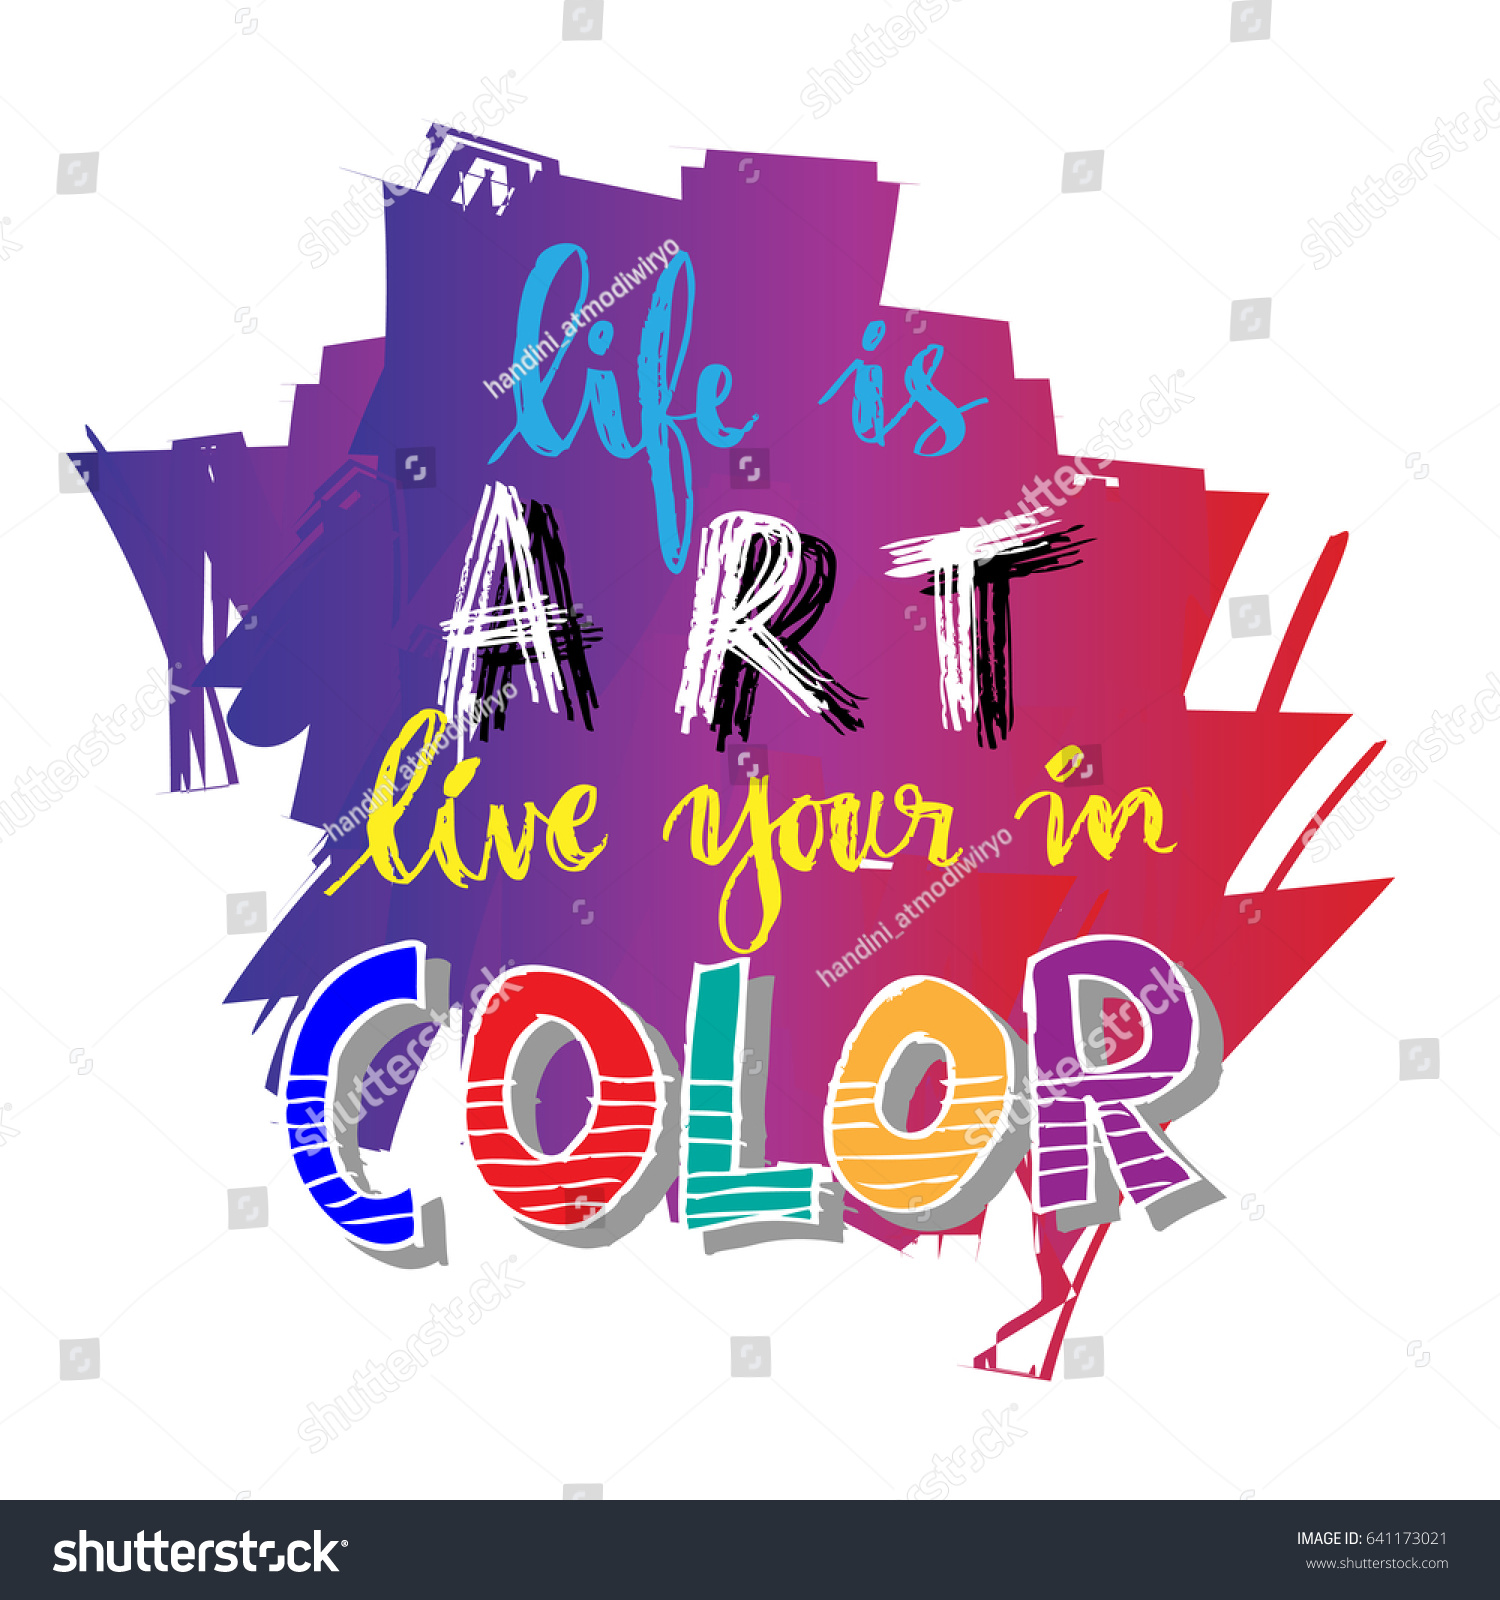 Color Your Life Quotes Life Art Live Your Color Hand Stock Vector 641173021  Shutterstock